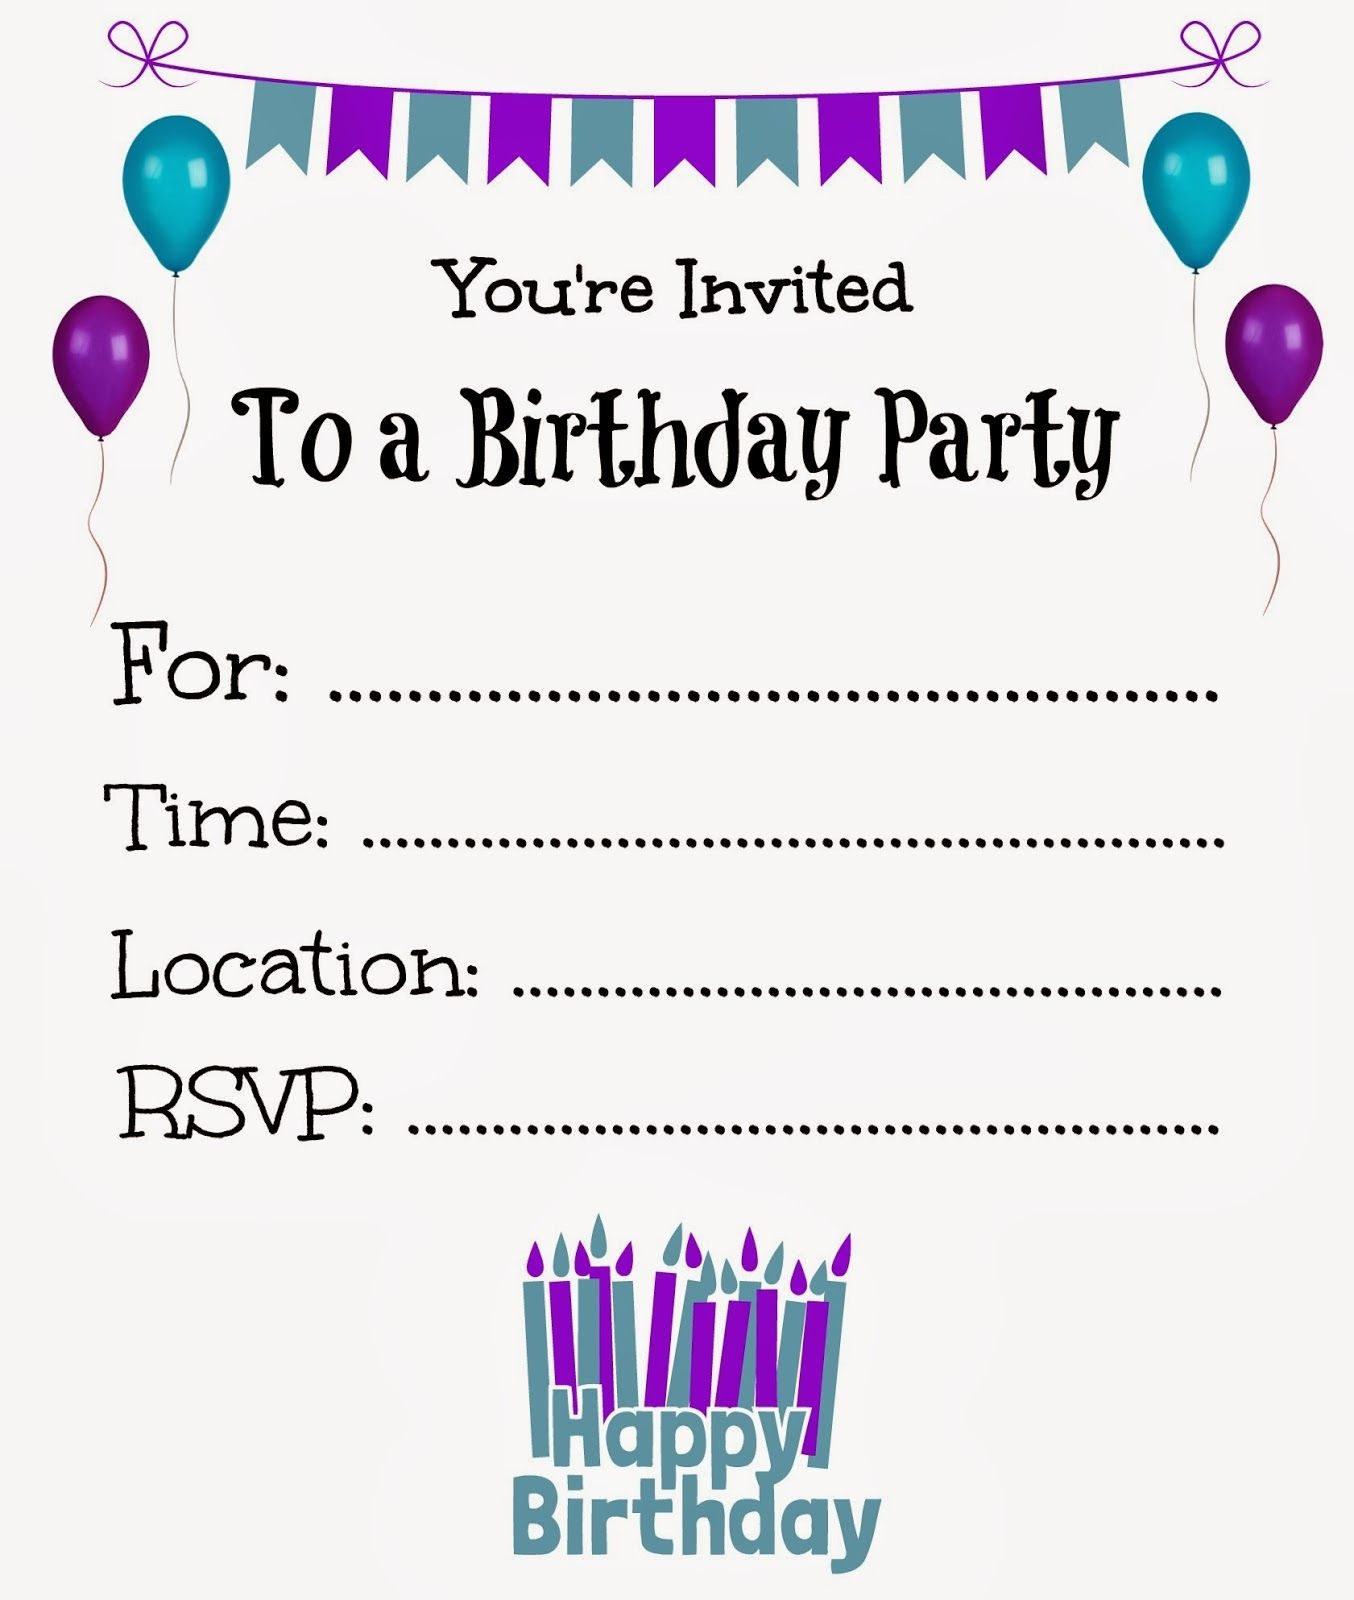 Birthday Cards Invitations Printable - Demir.iso-Consulting.co - Customized Birthday Cards Free Printable